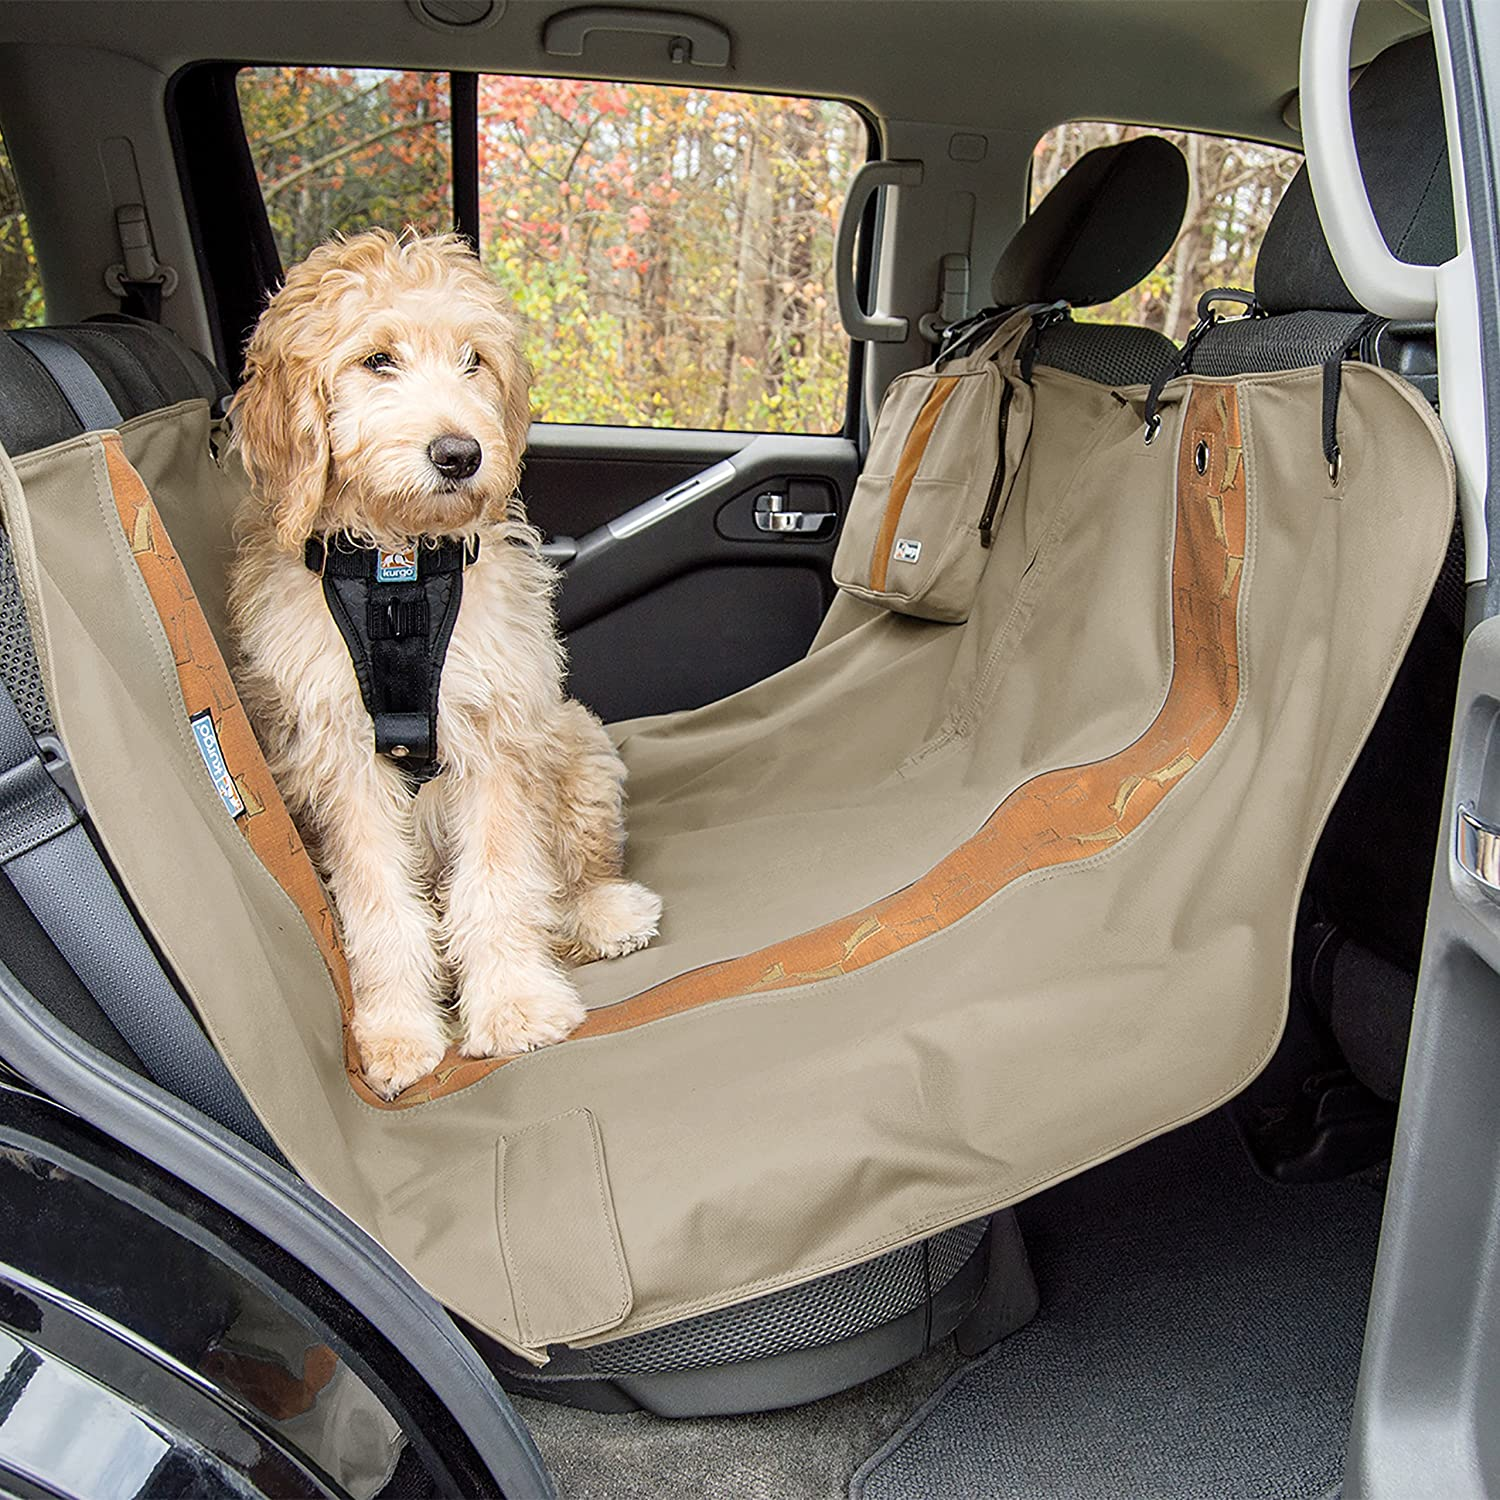 Exceptional Amazon.com : Kurgo Wander Dog Hammock Style Seat Cover For Pets, Pet Seat  Cover, Dog Car Hammock   Water Resistant, Khaki : Automotive Pet Seat  Covers : Pet ...